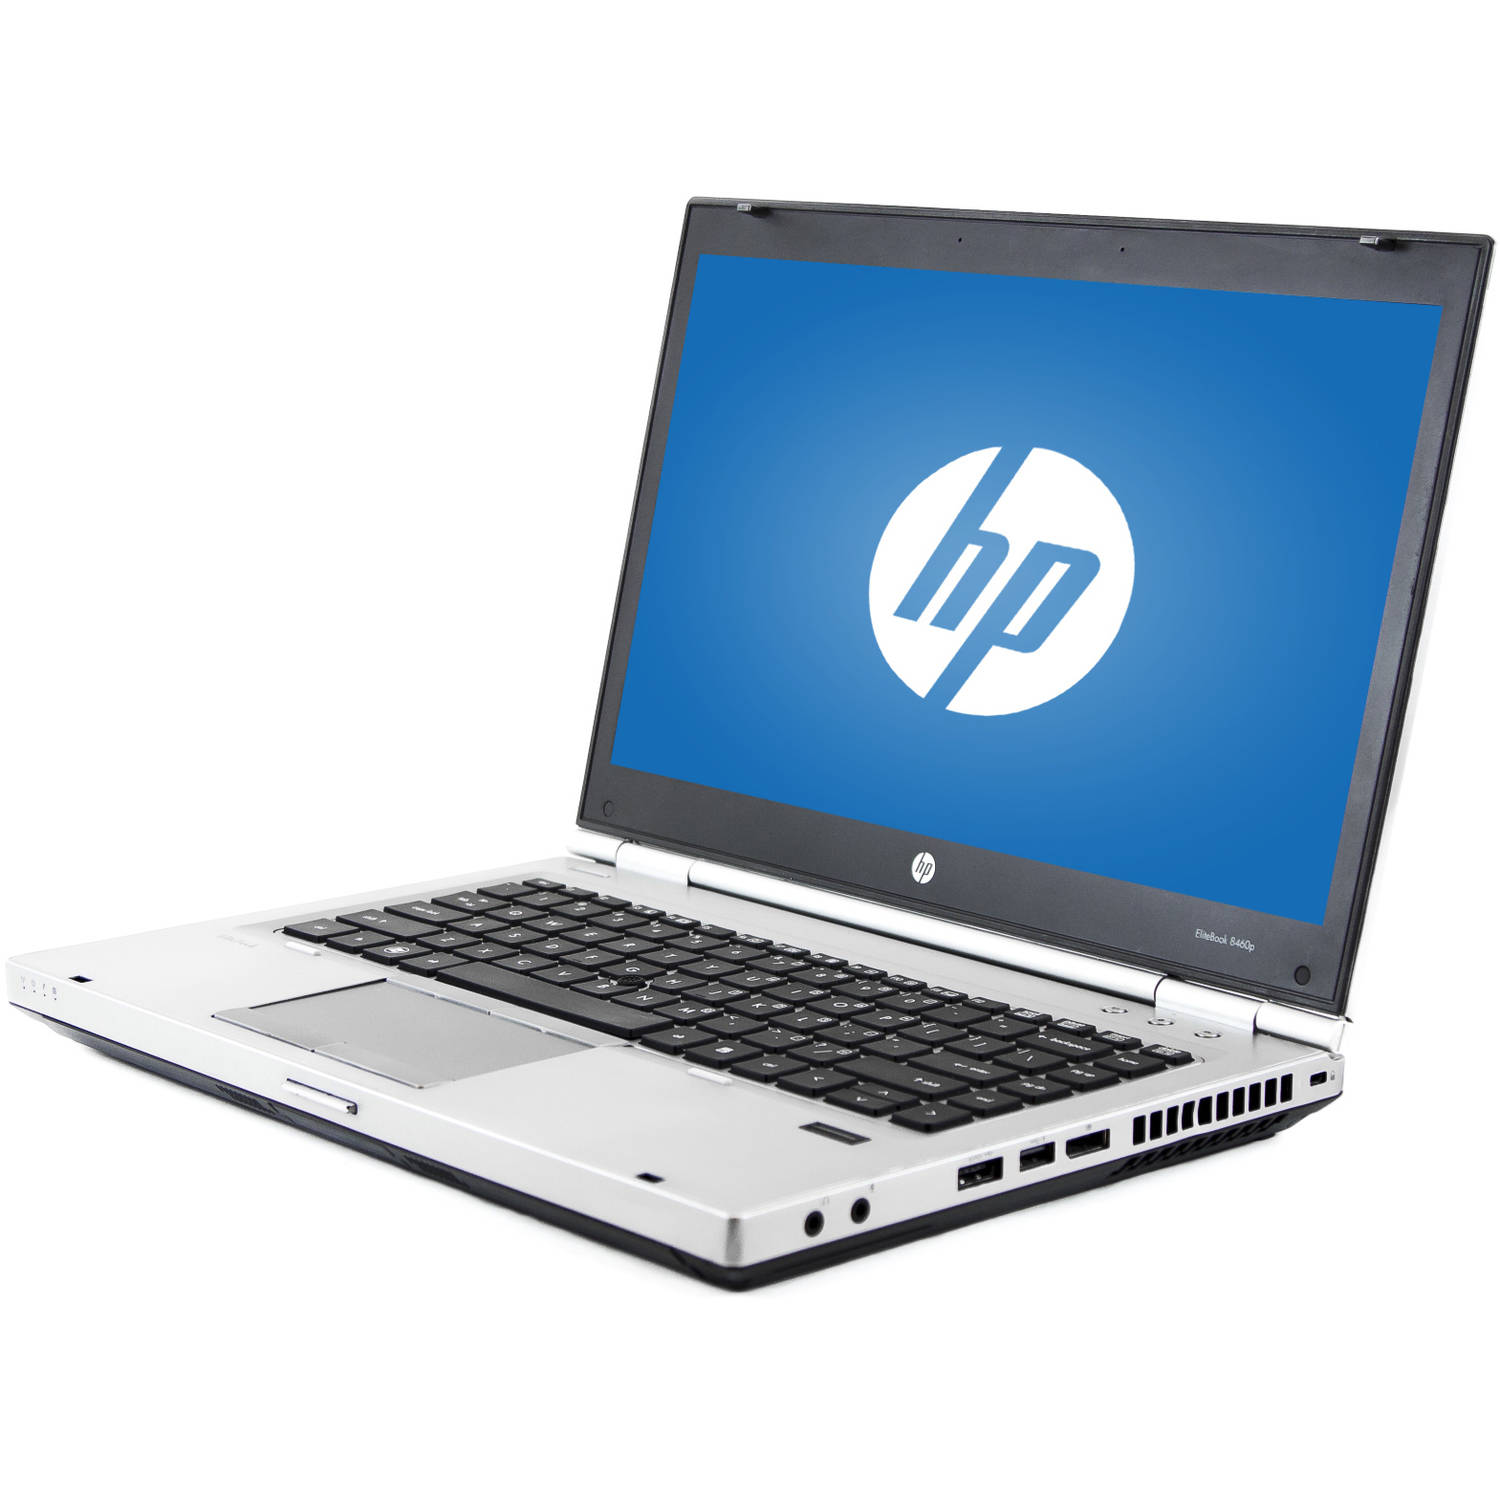 "Refurbished HP Silver 14"" EliteBook 8460P WA5-0942 Laptop PC with Intel Core i5-2520M Processor, 16GB Memory, 256GB Solid State Drive and Windows 10 Pro"